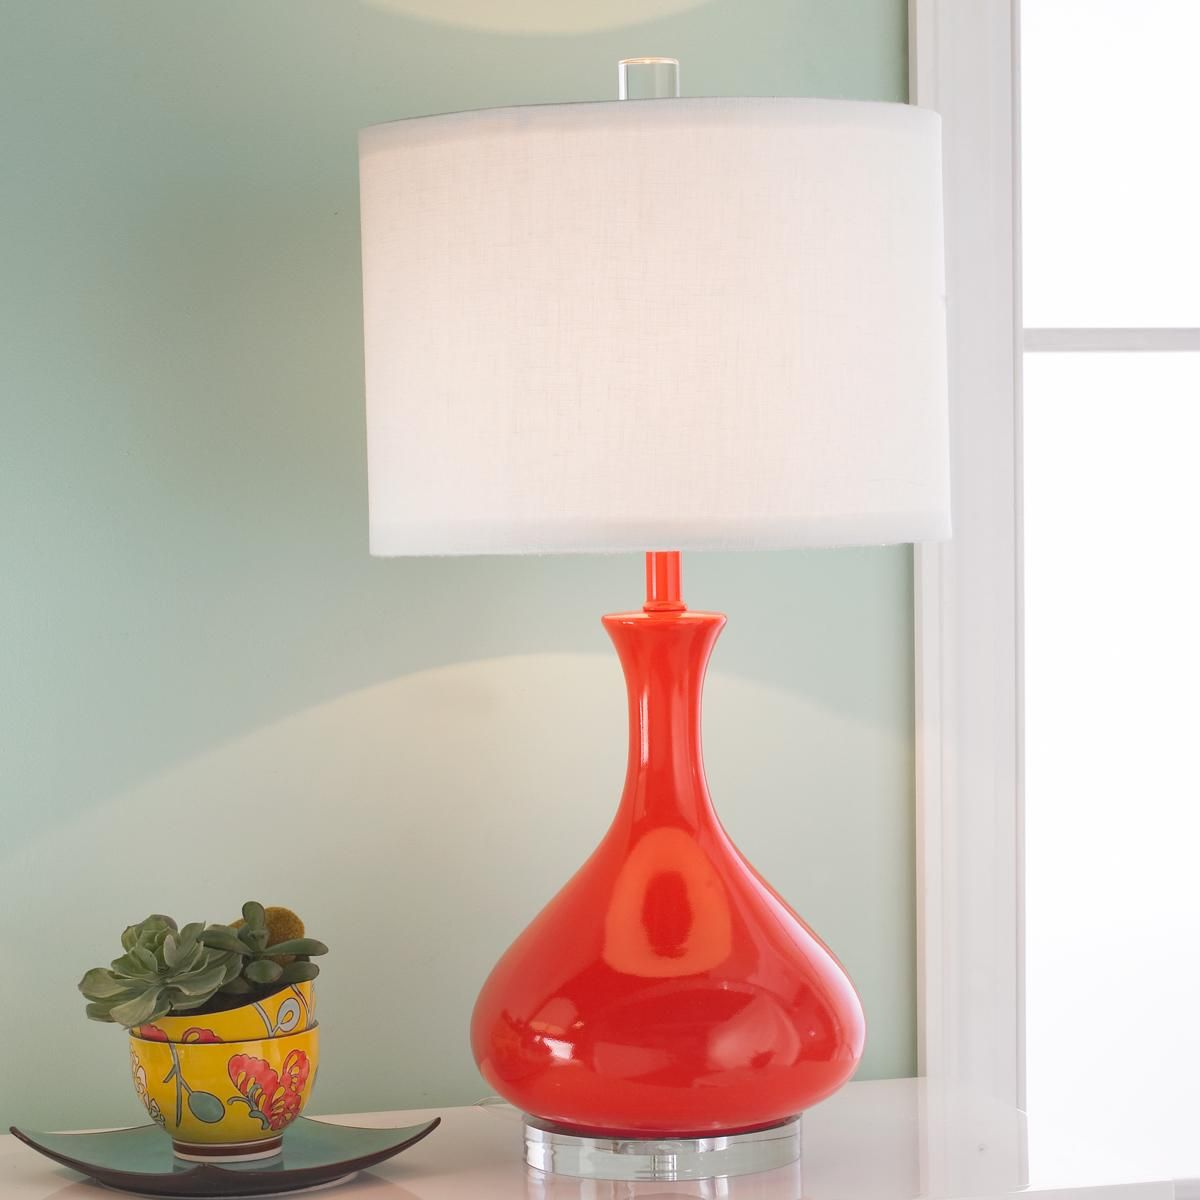 Bedroom Ideas Male Coral Black And White Bedroom Teal Black And White Bedroom Ideas Bedroom Bedside Lights: Ceramic Droplet Gourd Table Lamp